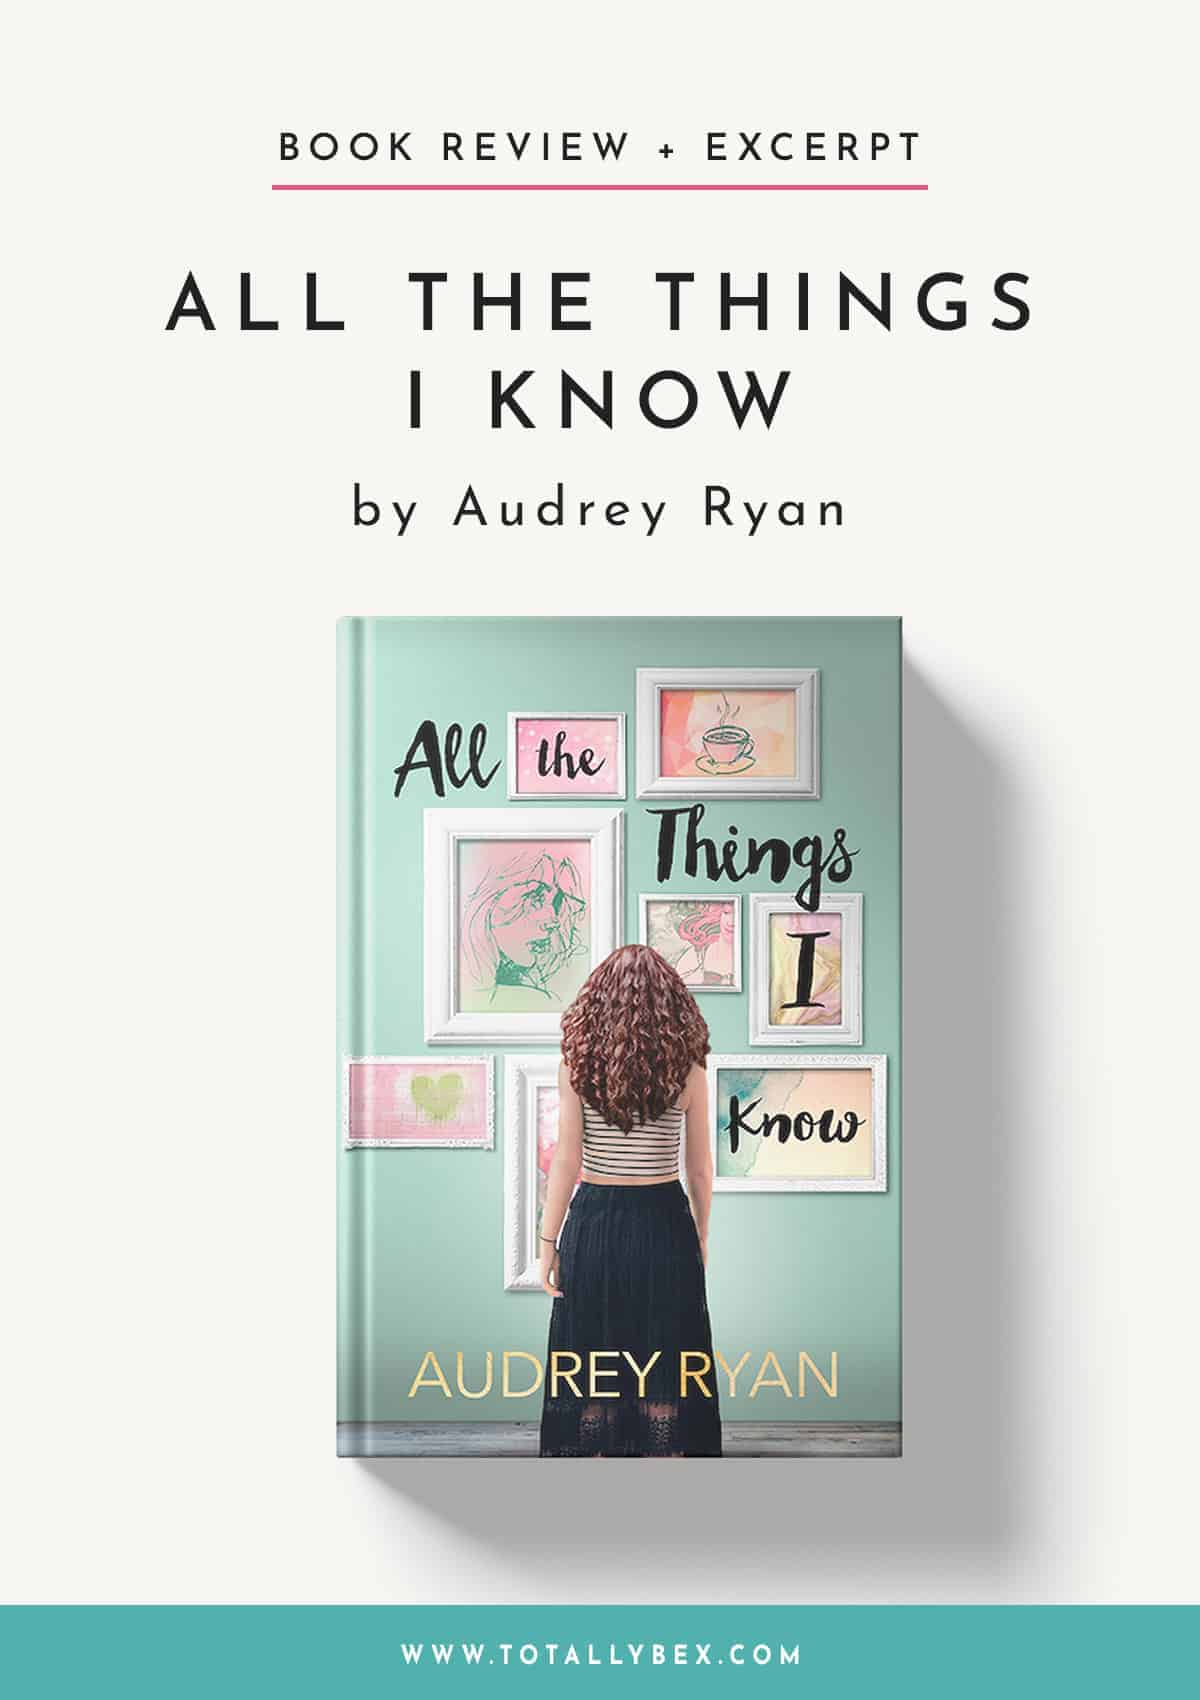 All the Things I Know by Audrey Ryan-Book Review+Excerpt